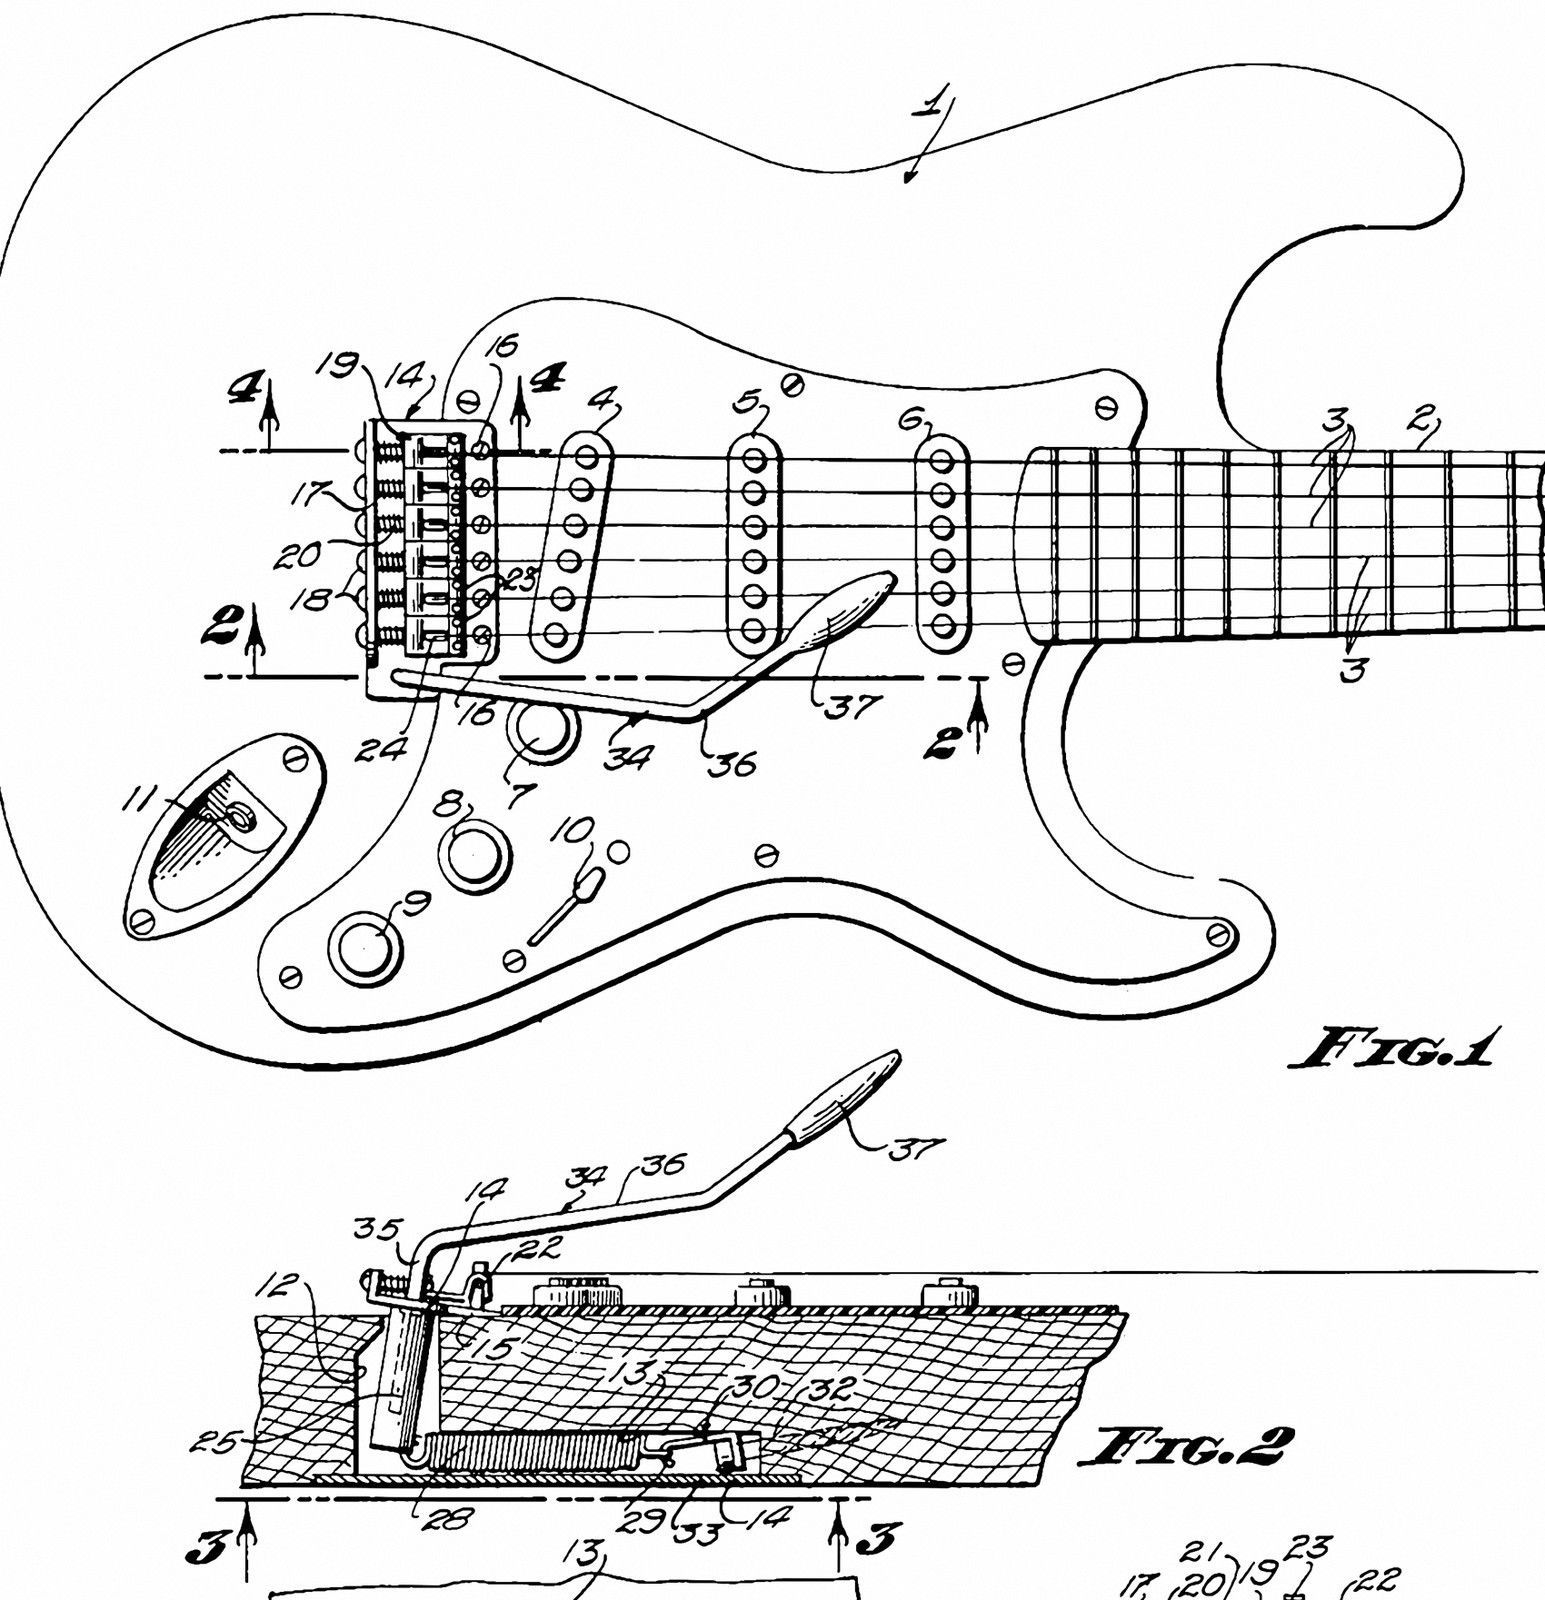 1956 Stratocaster Art Fender Poster Patent Drawing Guitar